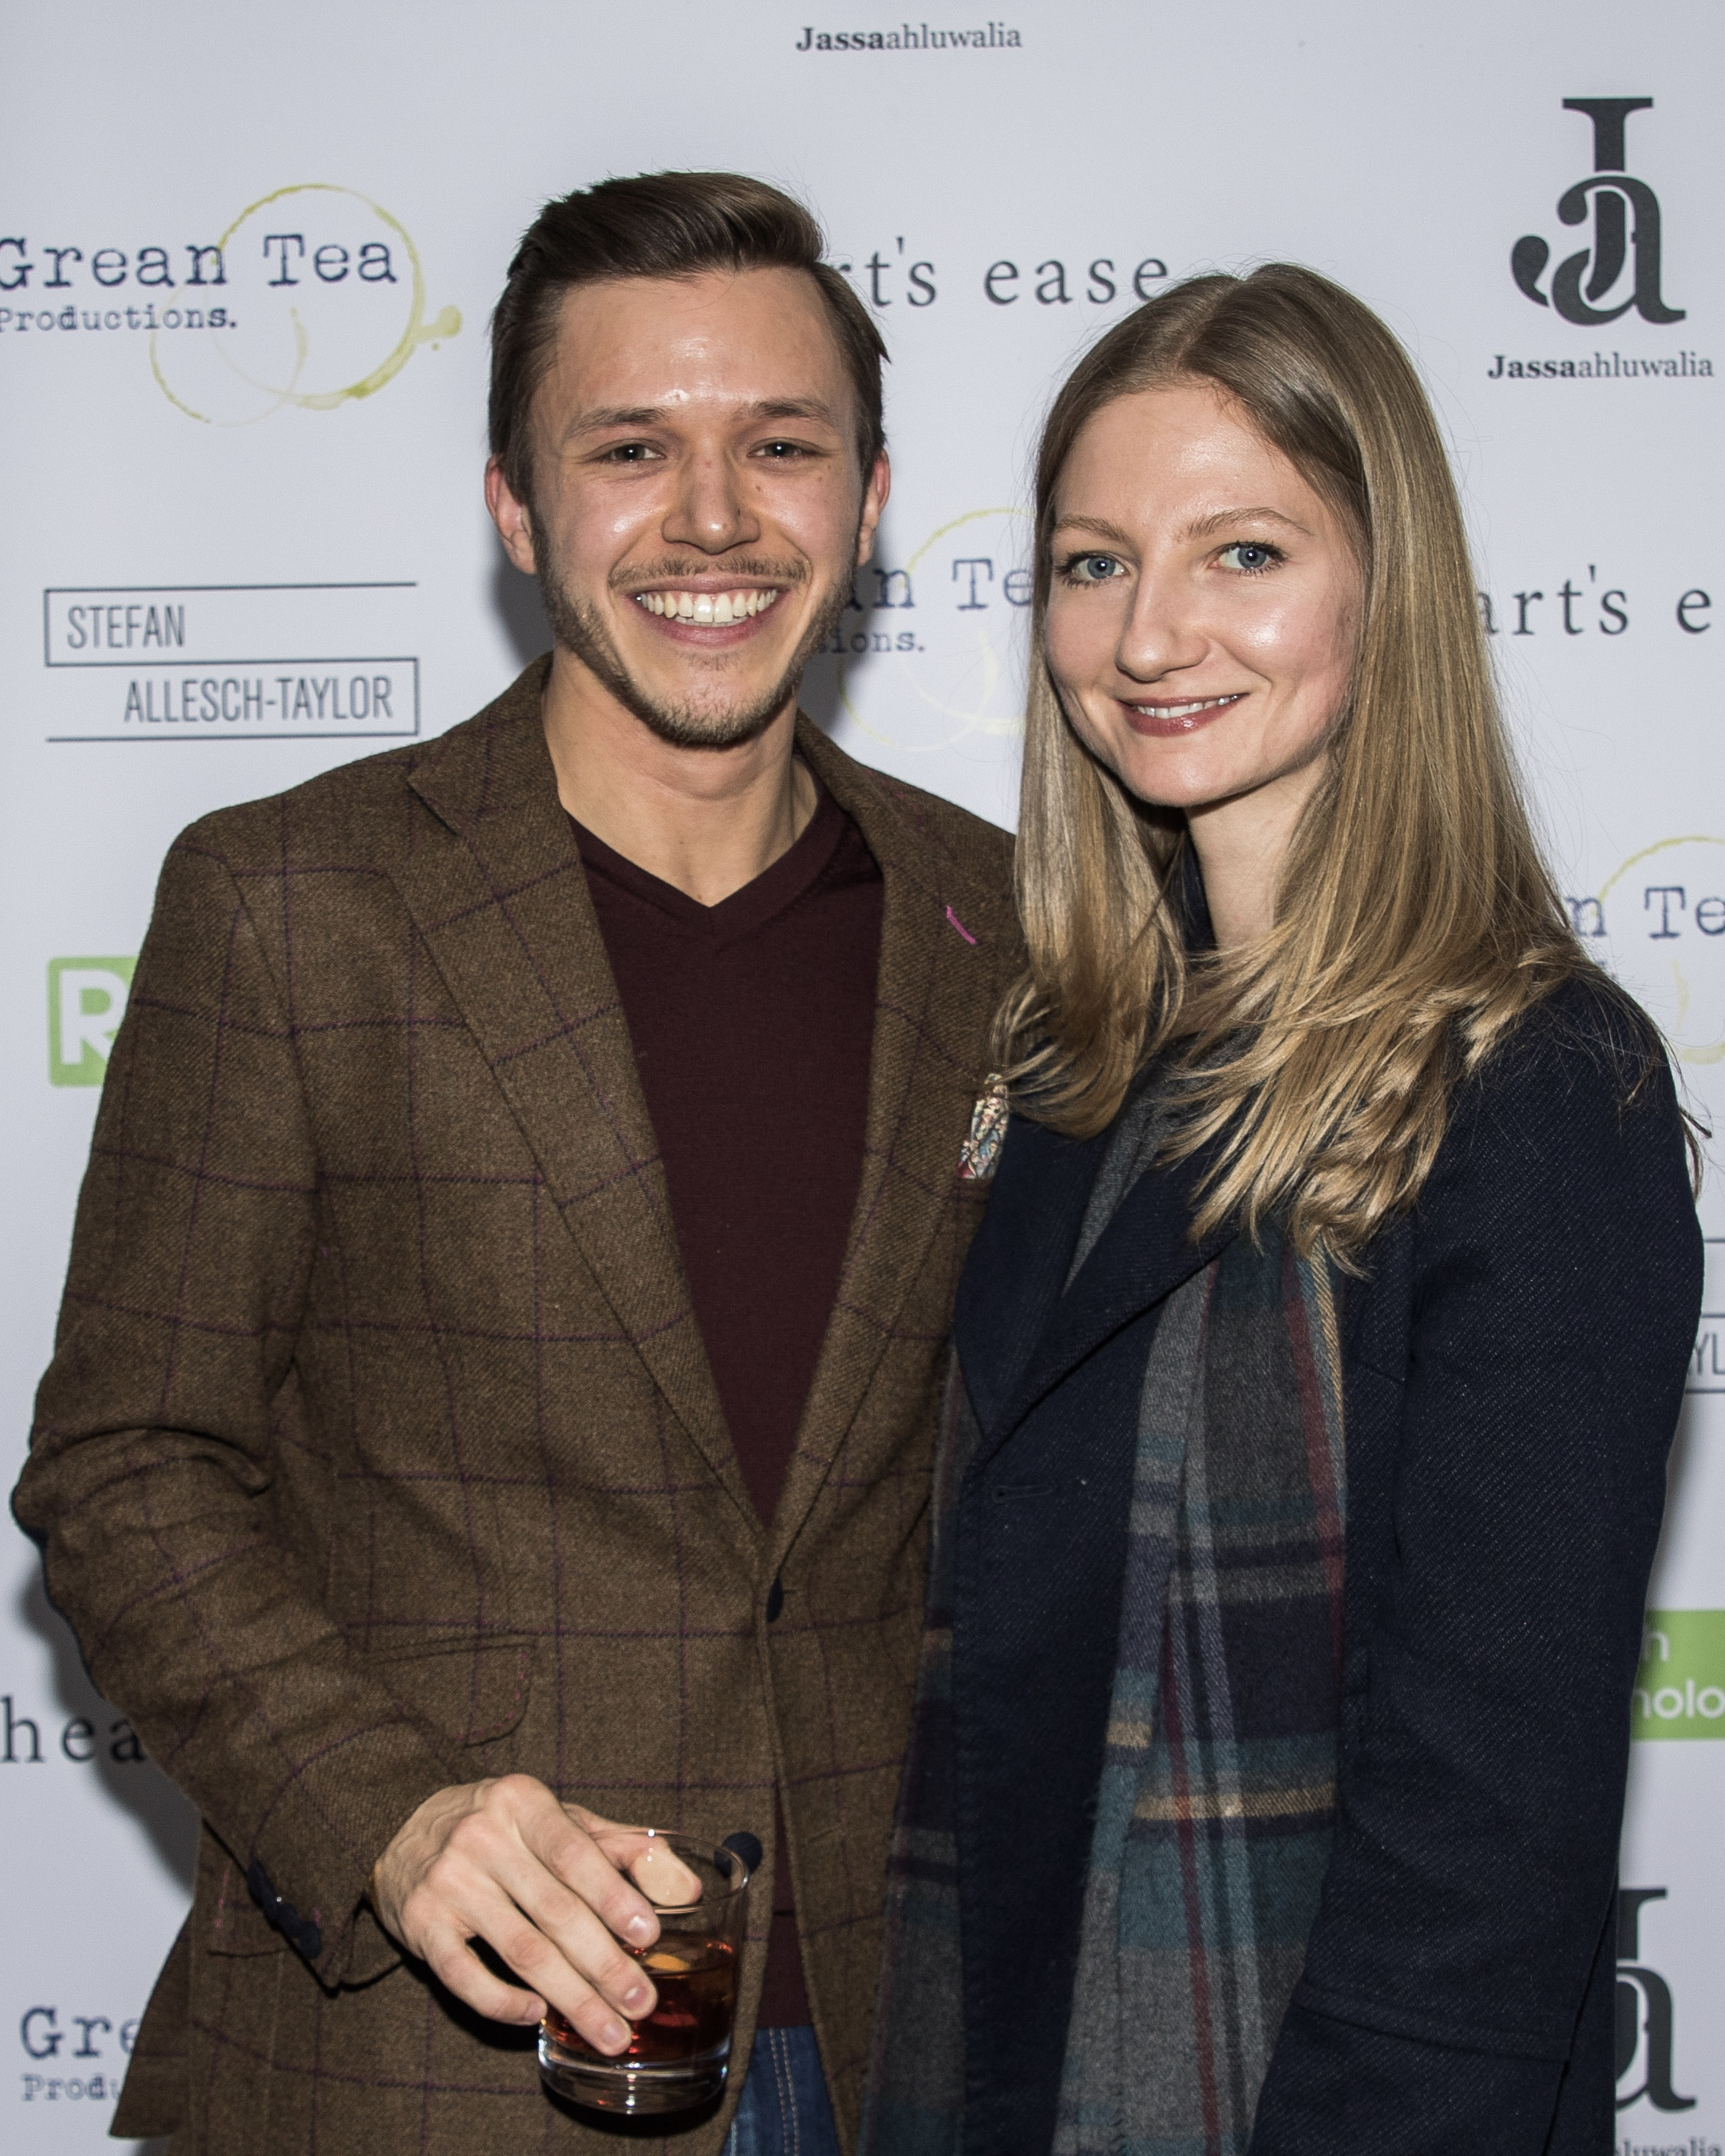 Jassa Ahluwalia and Natalie Healy attend the cast and crew screening of Heart's Ease.